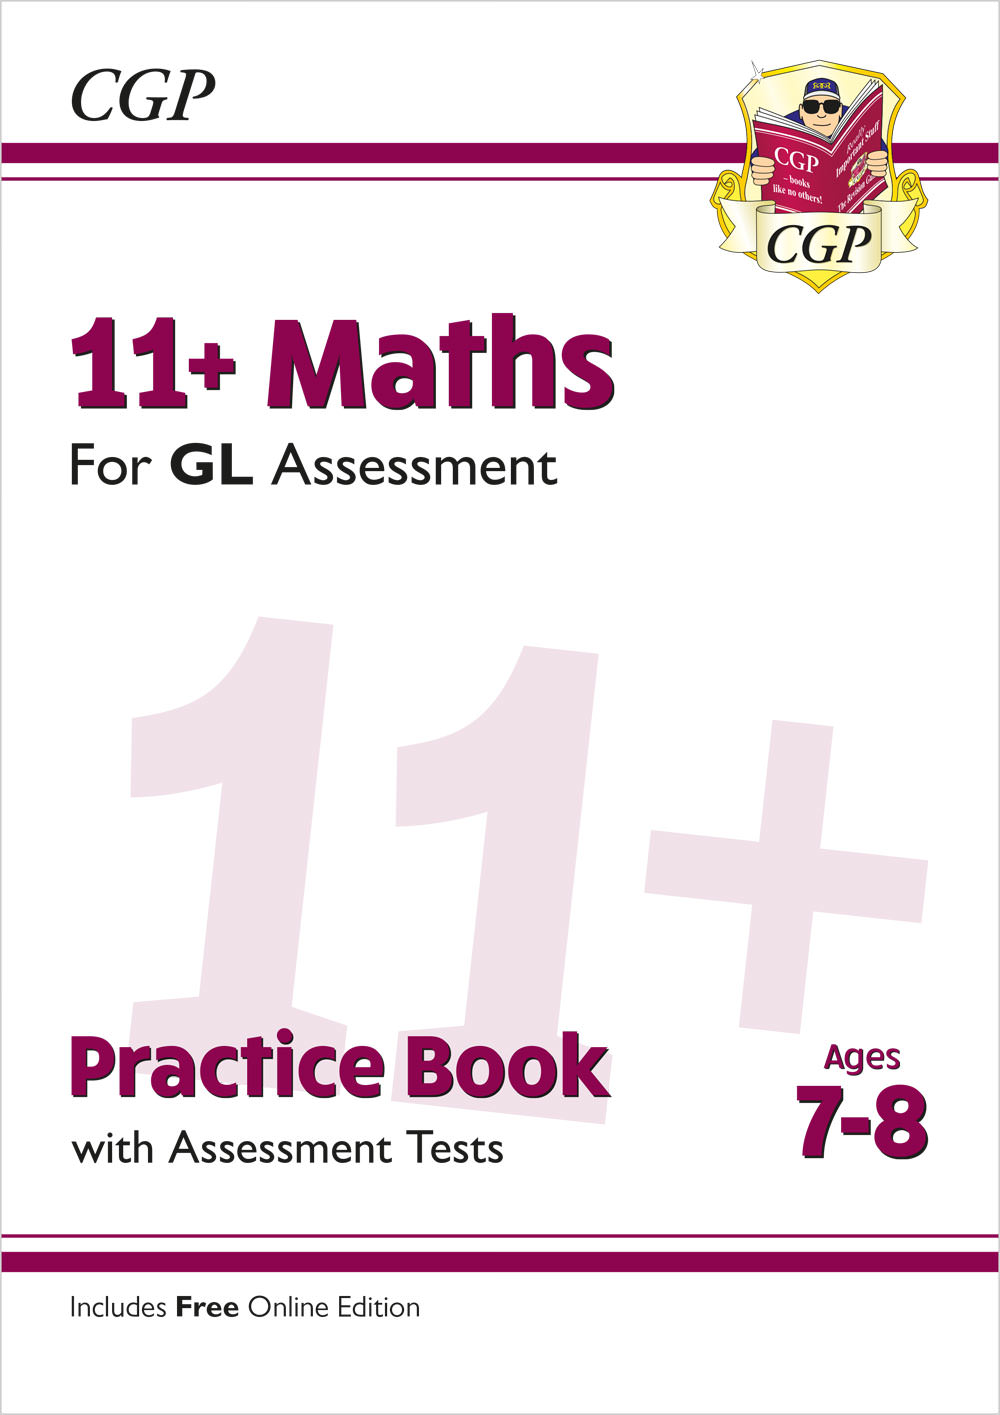 M3QE2 - 11+ GL Maths Practice Book & Assessment Tests - Ages 7-8 (with Online Edition)